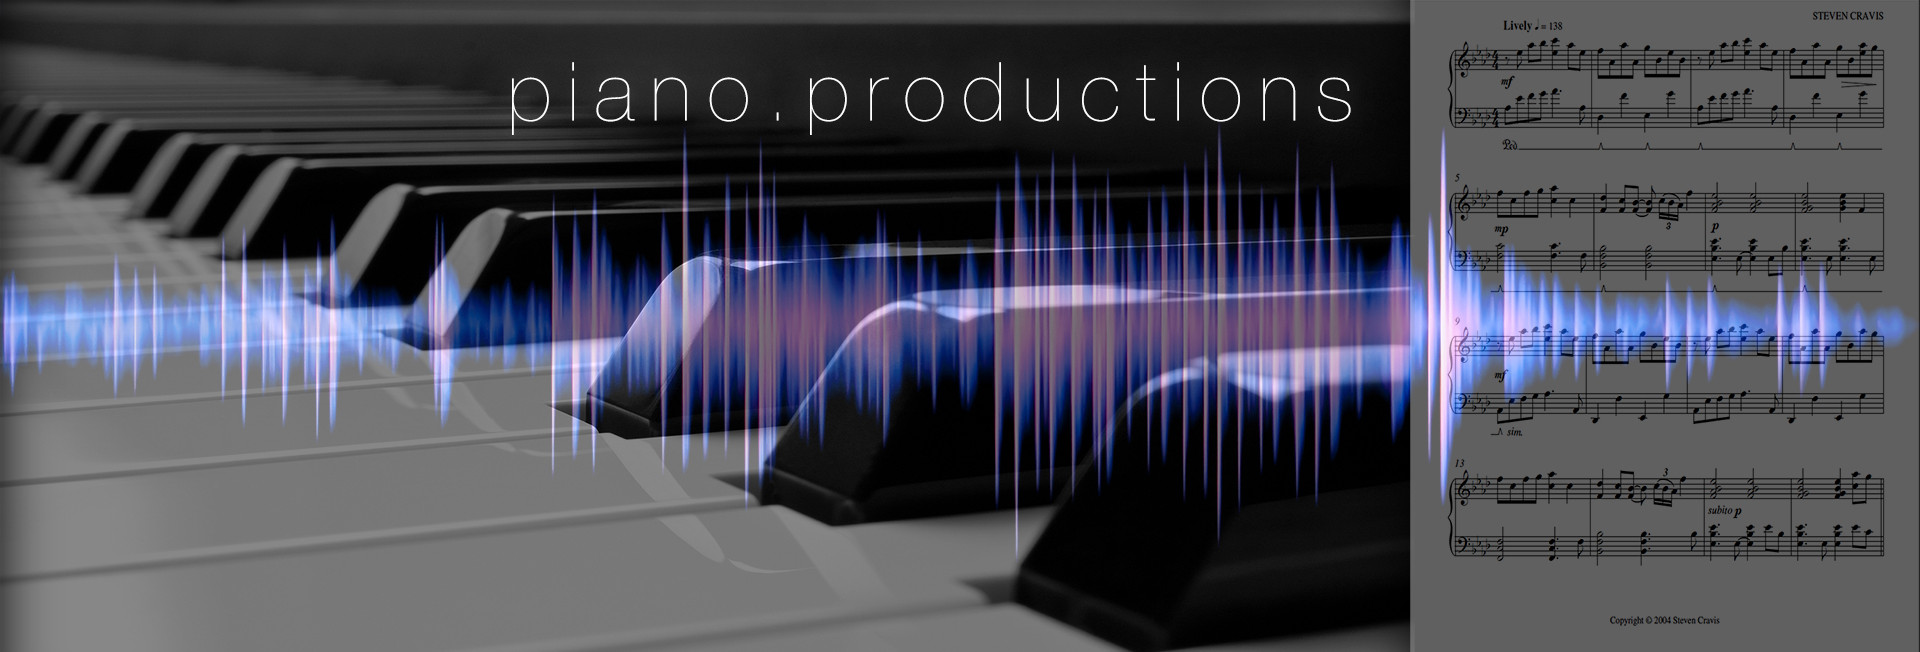 piano-productions1-e1433422977507